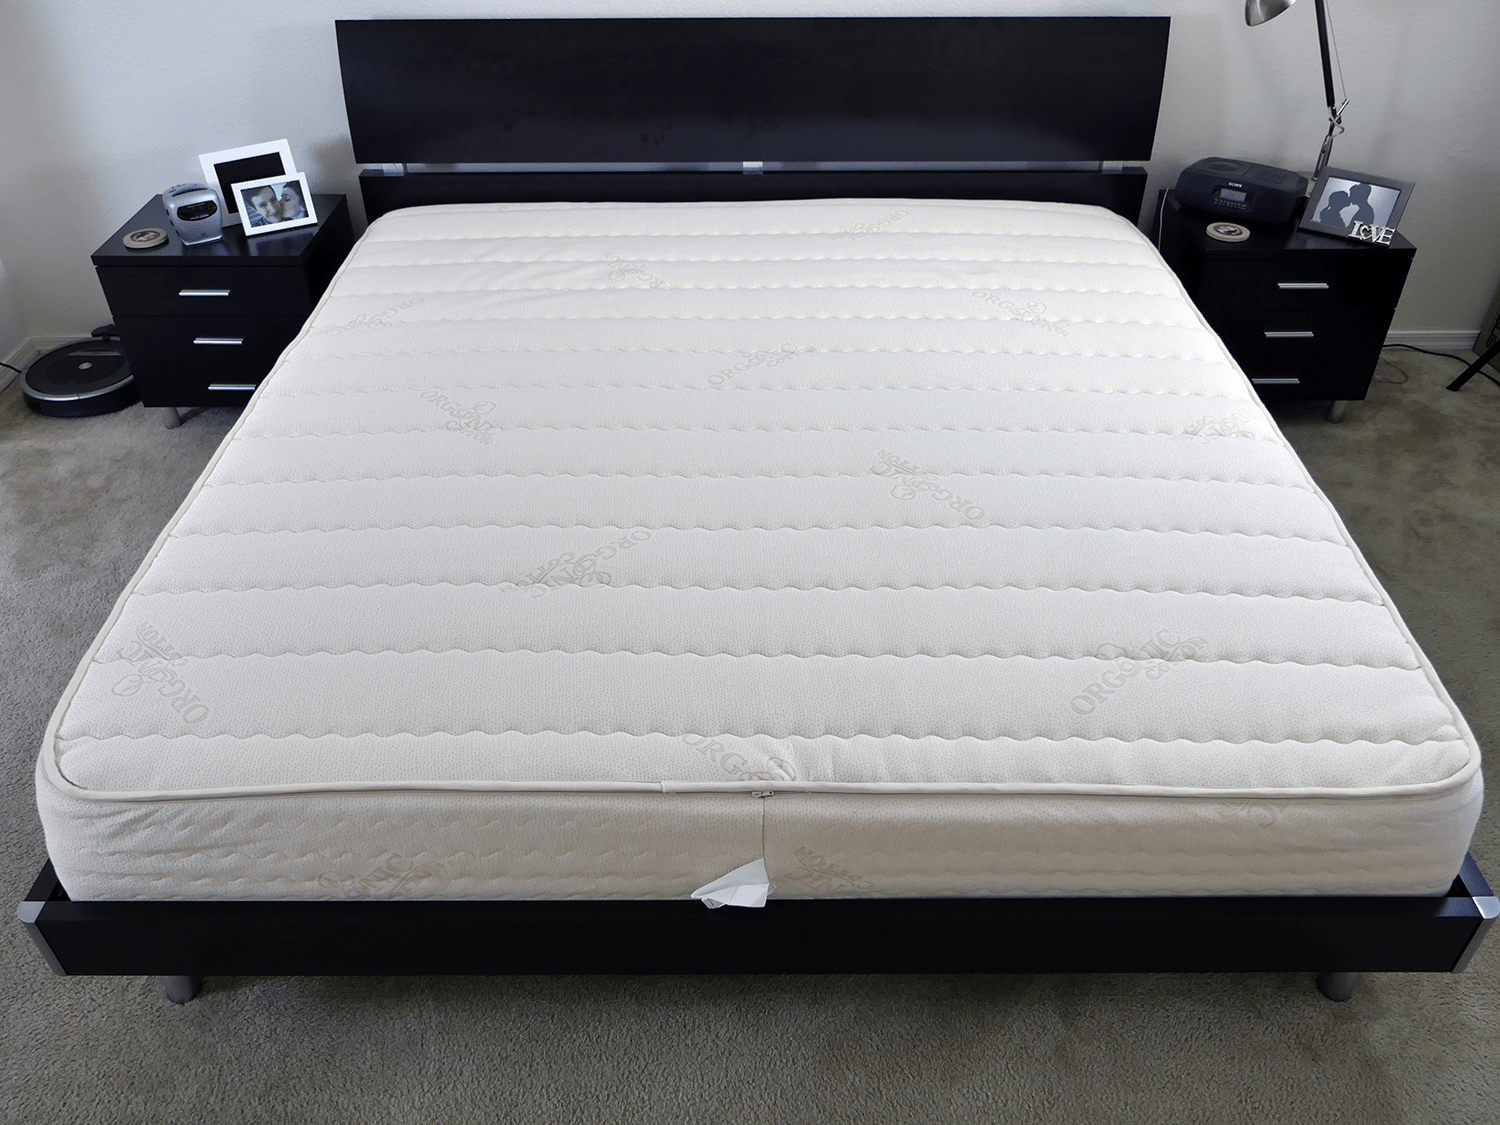 Tempurpedic Mattress Reviews >> PlushBeds Botanical Bliss Mattress Review | Sleepopolis